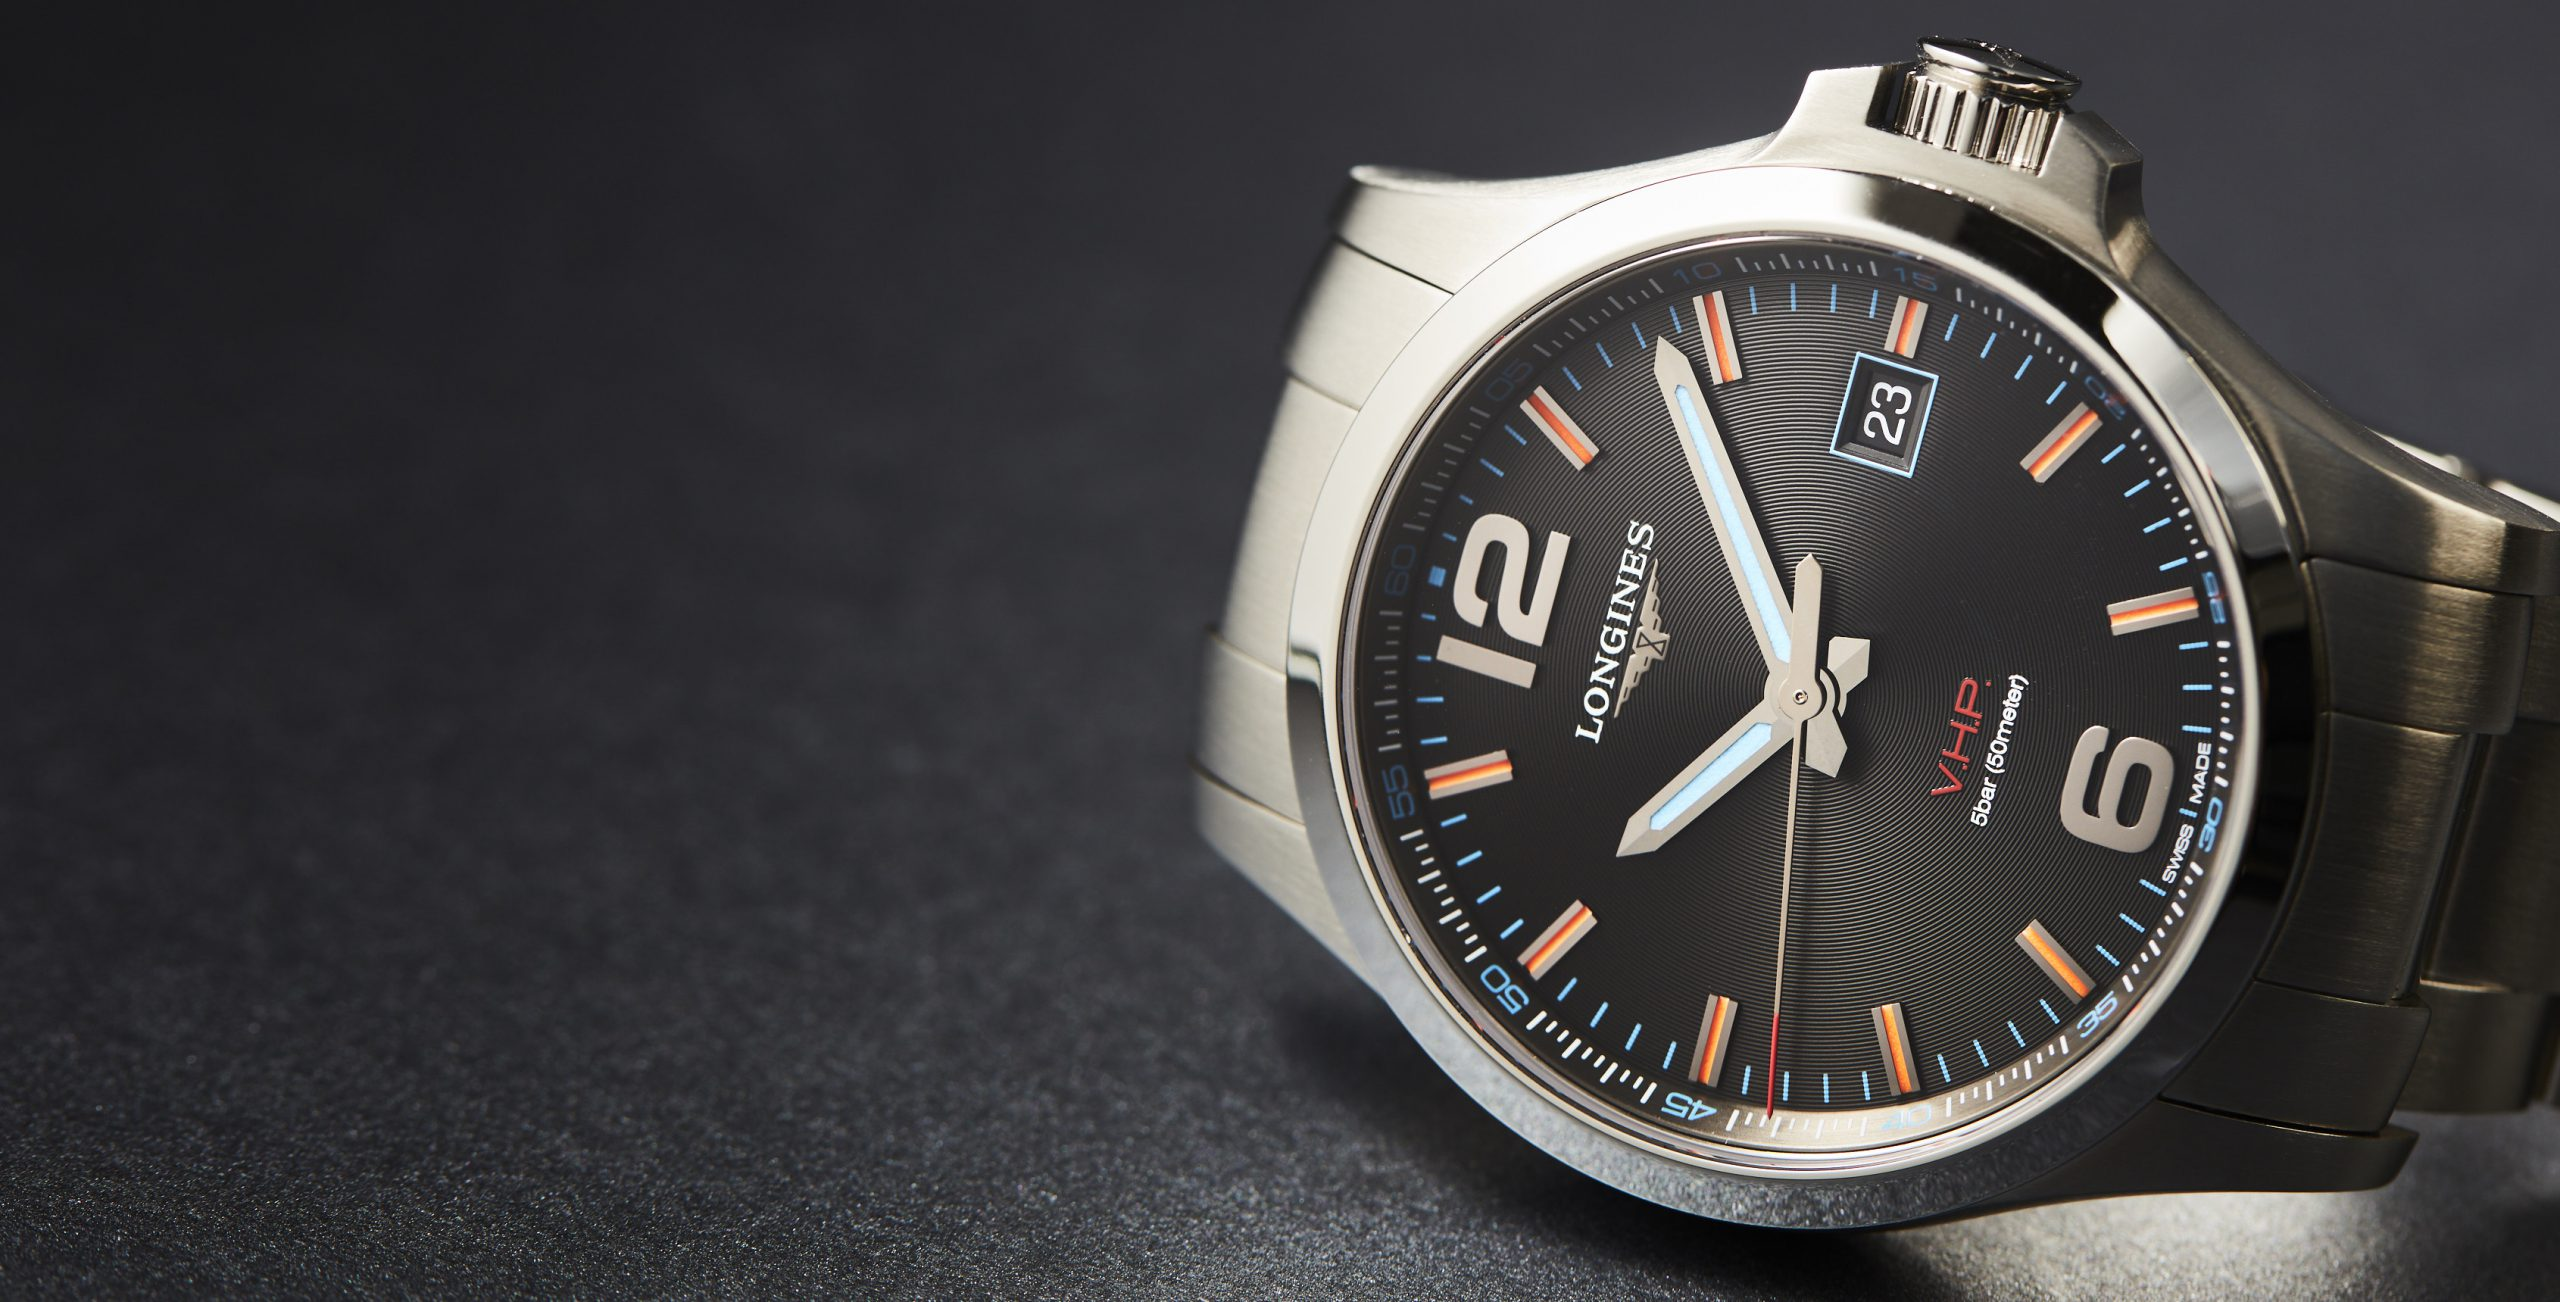 ANNOUNCING: We are selling 10 of the last remaining Longines V.H.P. Commonwealth Games watches in Australia, but that's only half of what you get…